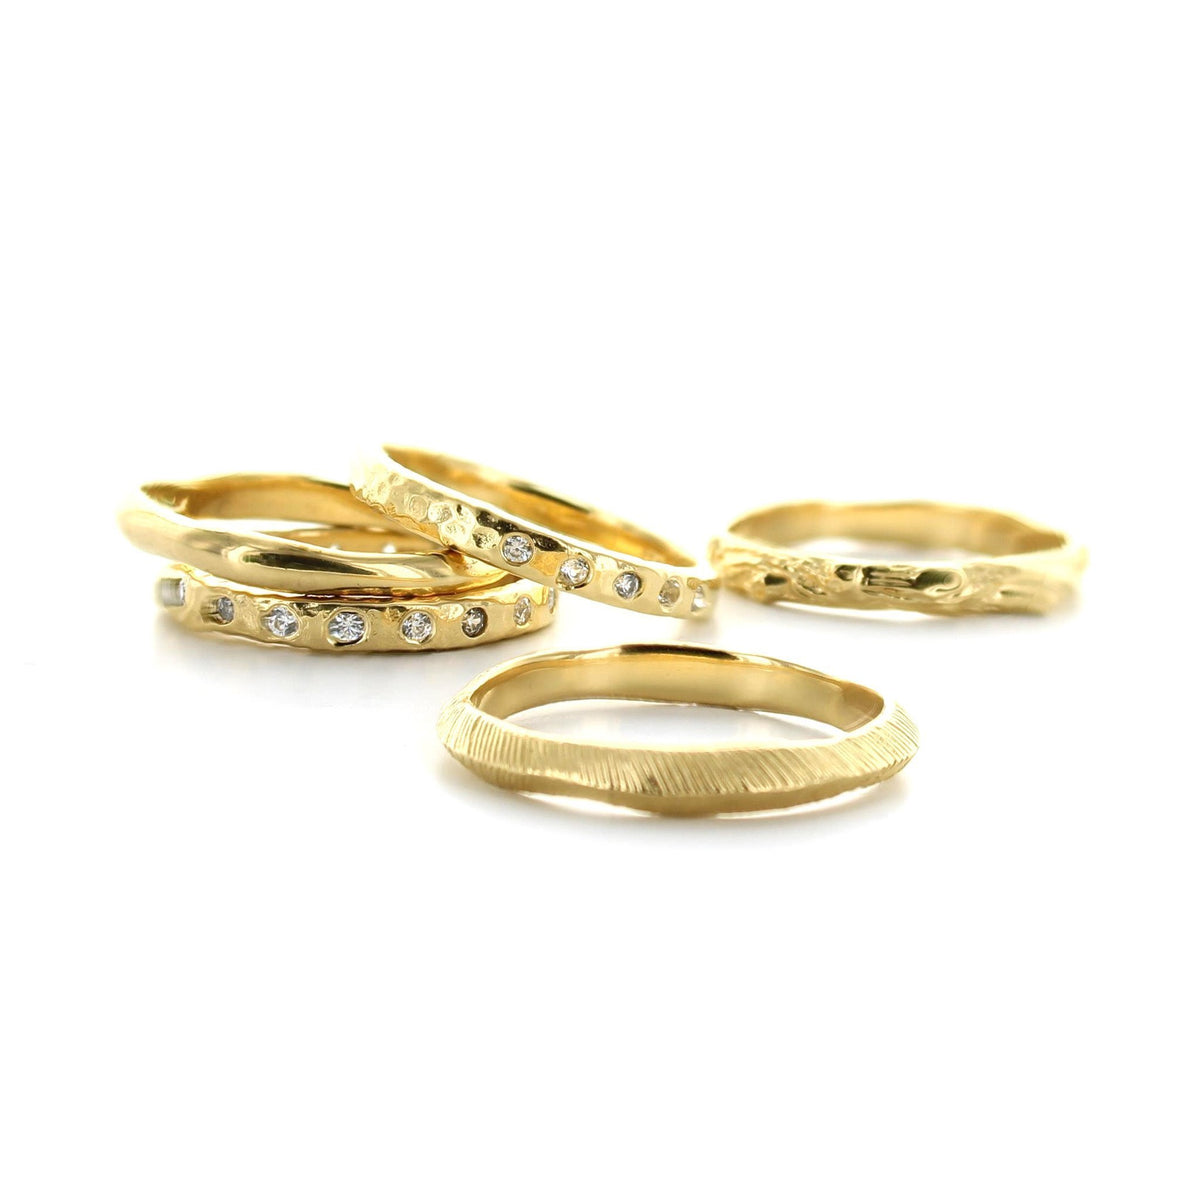 BRAVE STACKING RING & PENDANT GOLD - SO PRETTY CARA COTTER